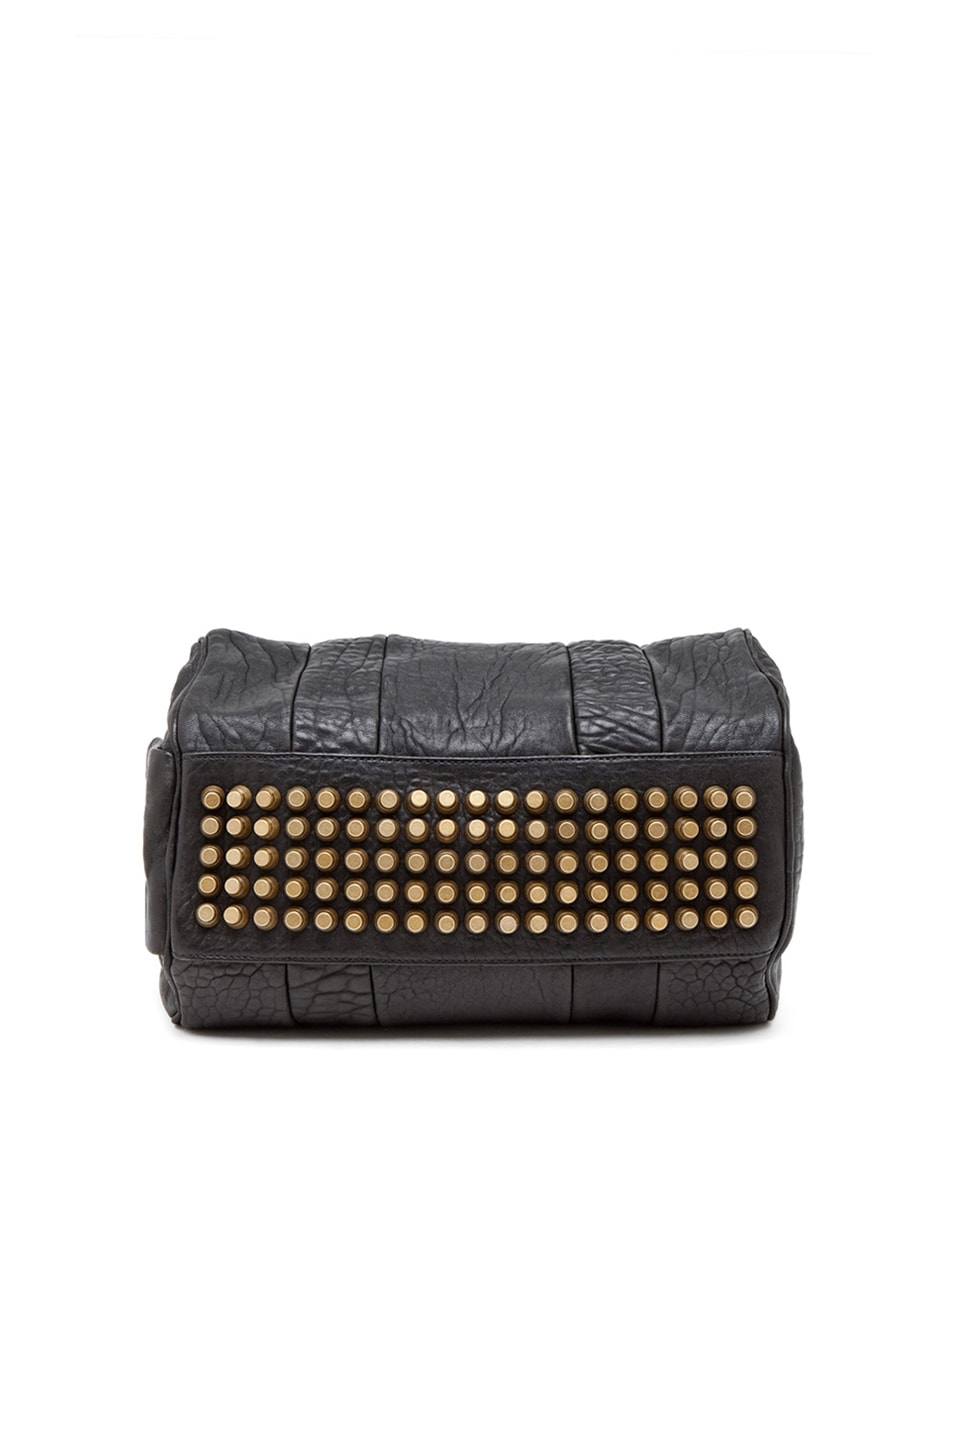 Image 6 of Alexander Wang Rocco Satchel with Gold Hardware in Black